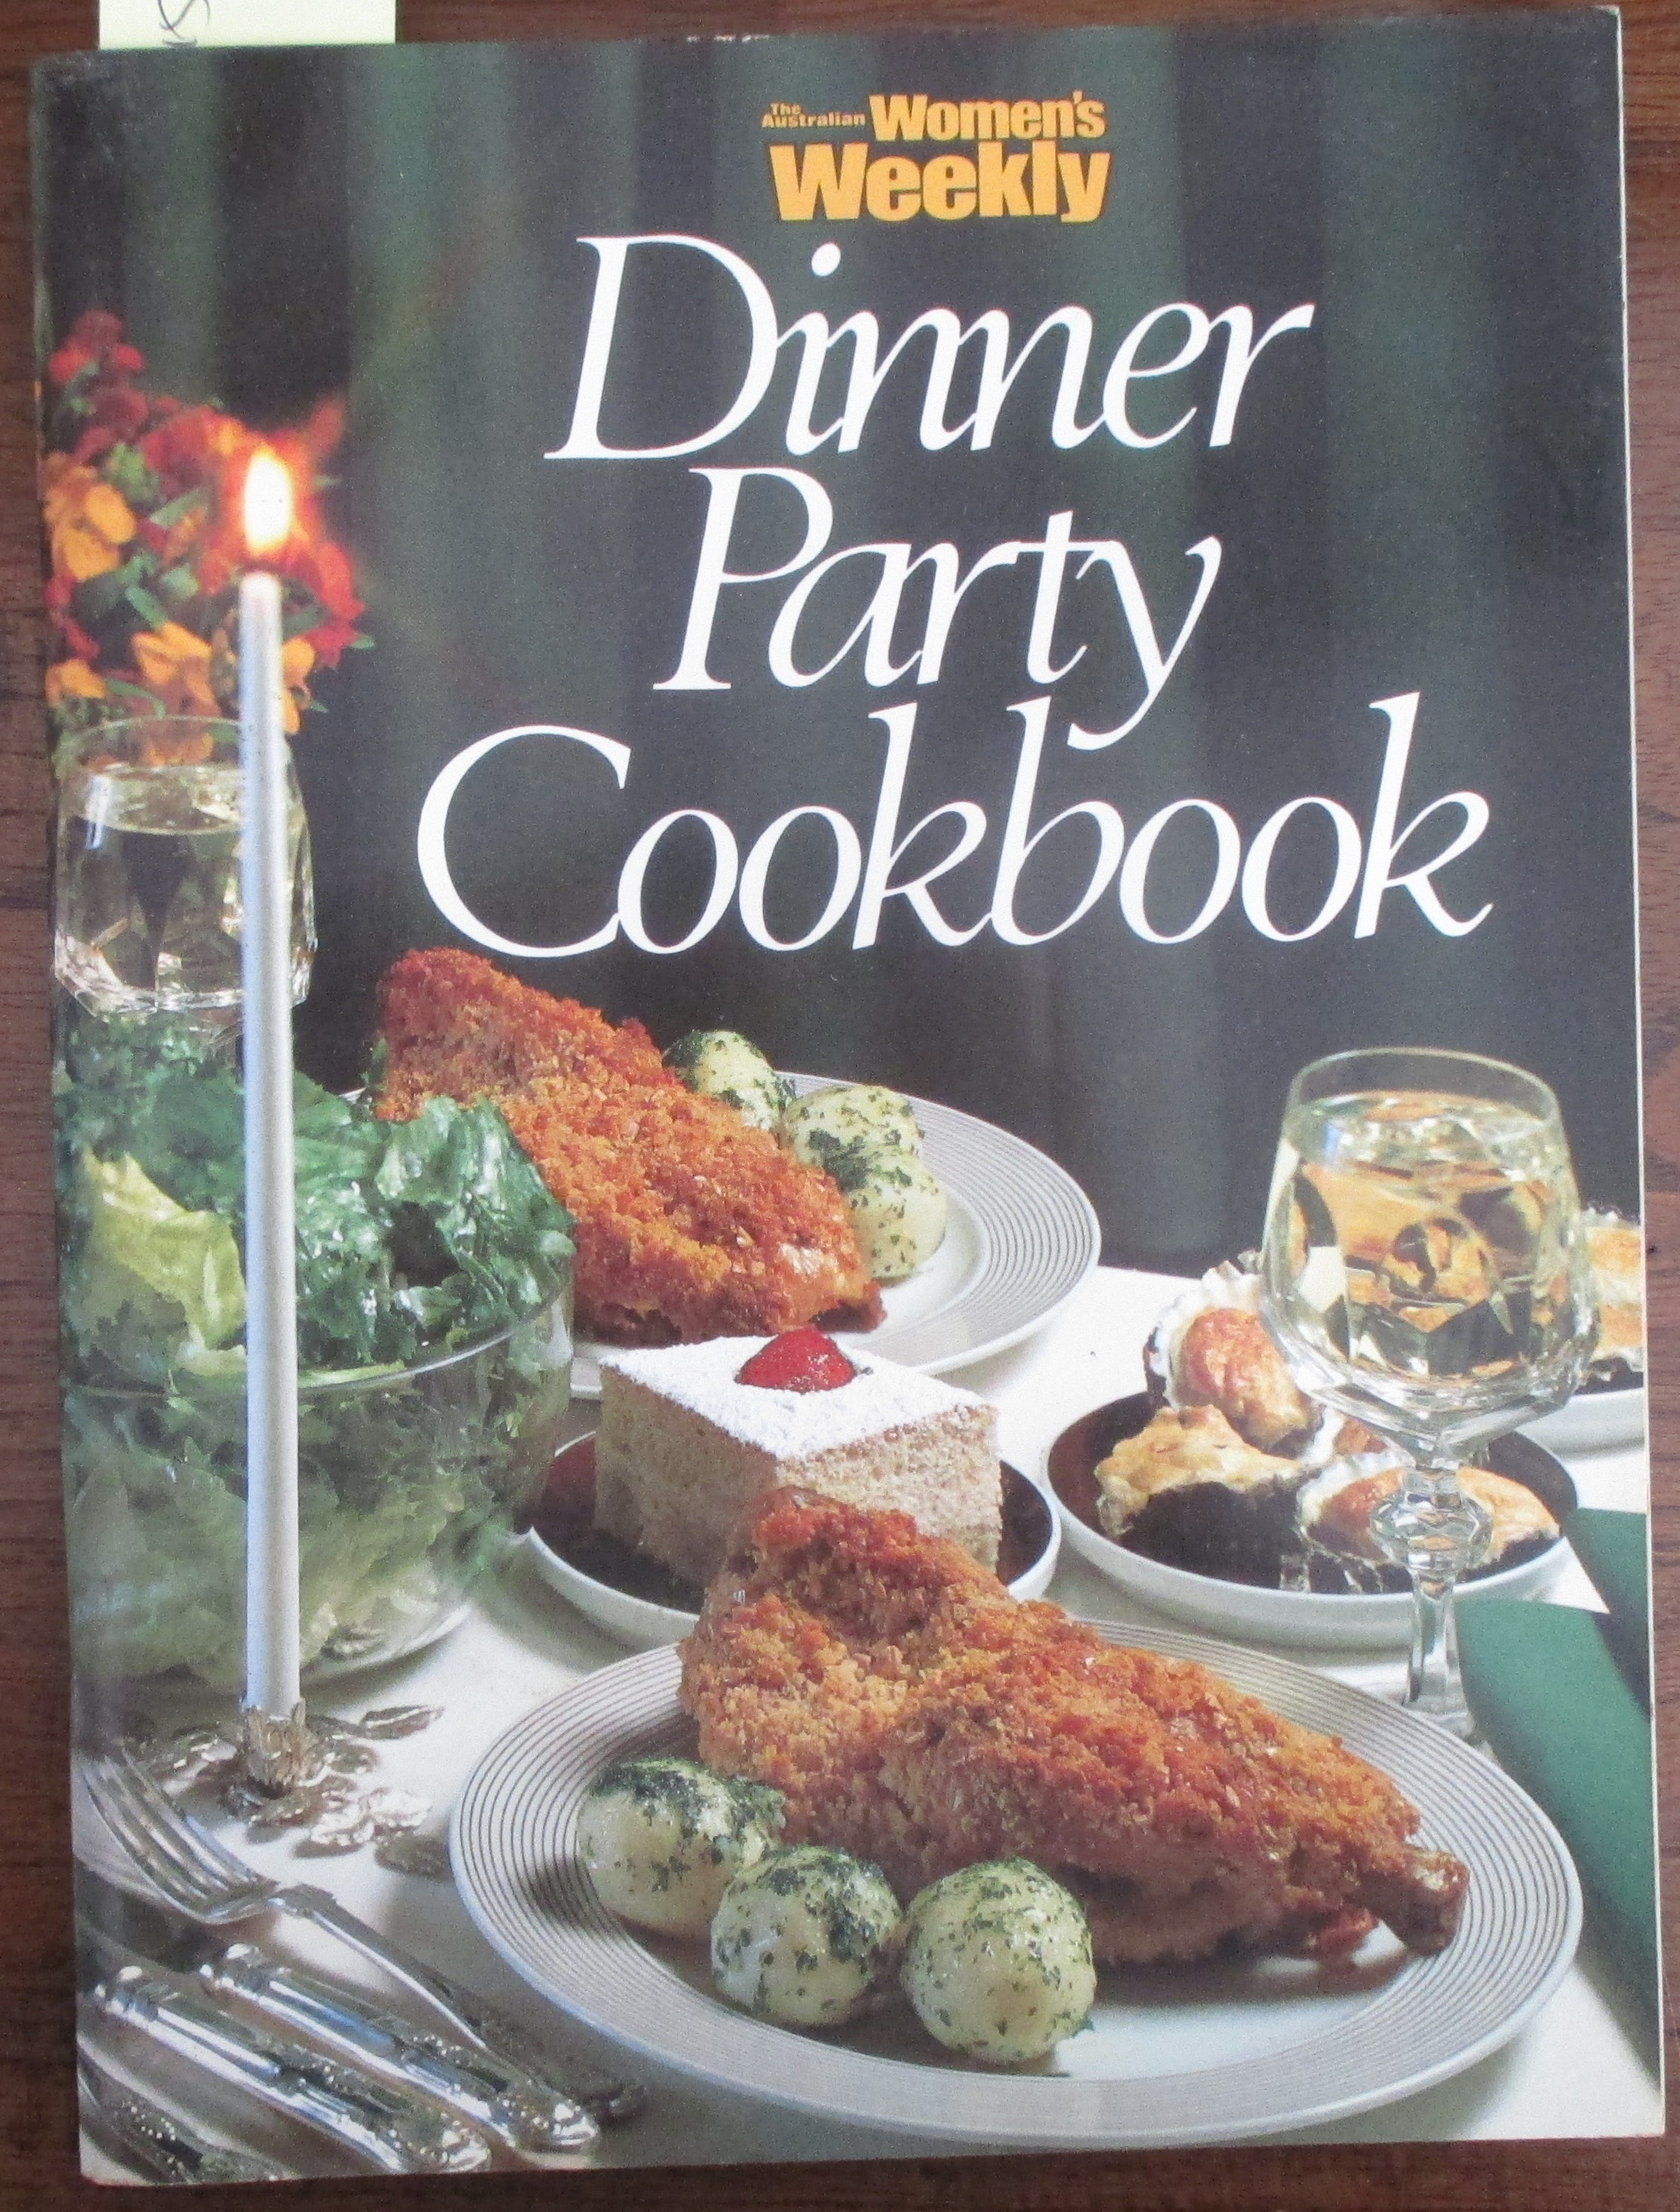 Image for Dinner Party Cookbook (The Australian Women's Weekly)